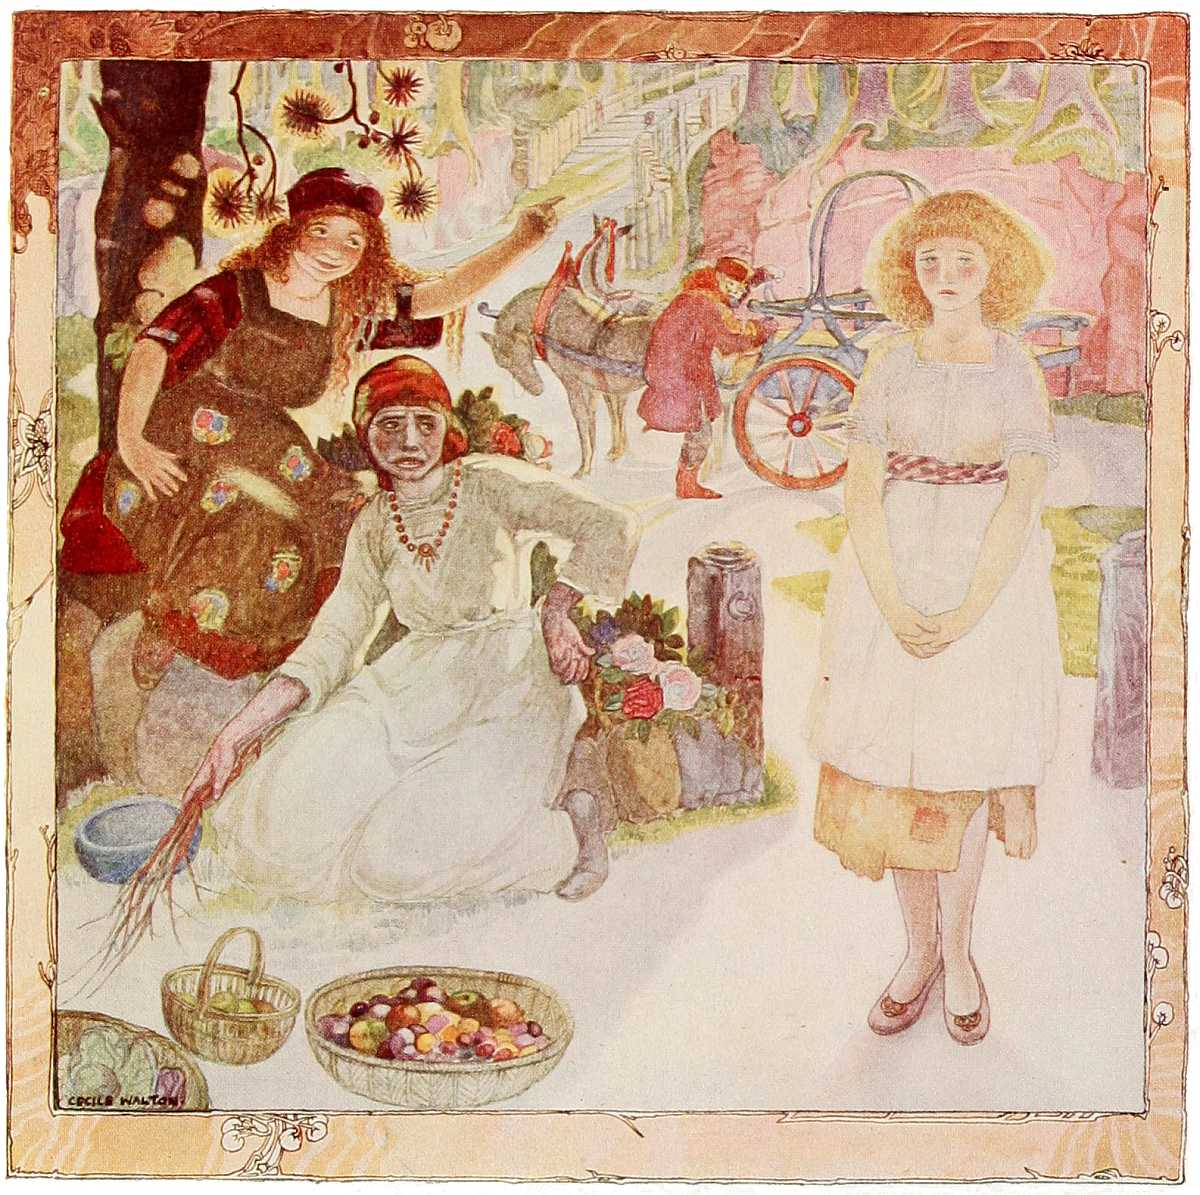 The Project Gutenberg eBook of Polish Fairy Tales, by Maude